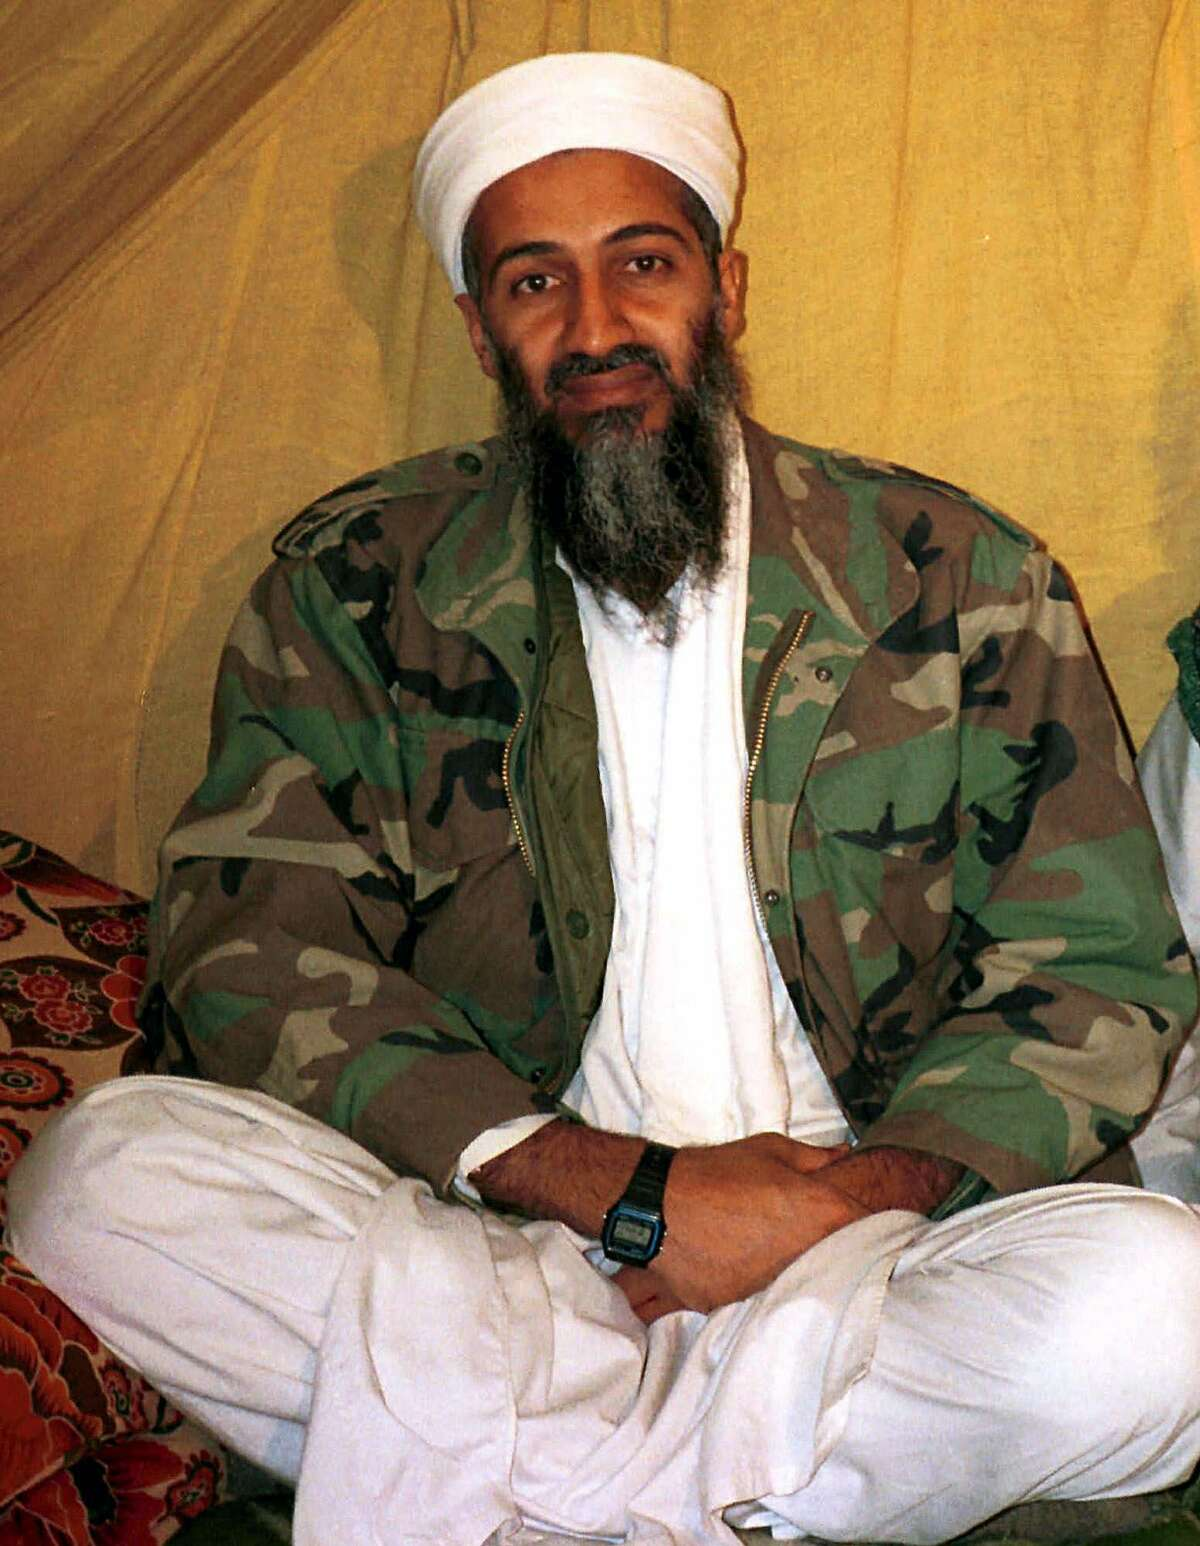 This is an undated file photo shows al Qaida leader Osama bin Laden, in Afghanistan. A former Navy SEAL's insider account of the raid that killed Osama bin Laden contains classified information, the Pentagon said Tuesday, and the admiral who heads the Naval Special Warfare Command said details in the book may provide enemies with dangerous insight into their secretive operations. (AP Photo)